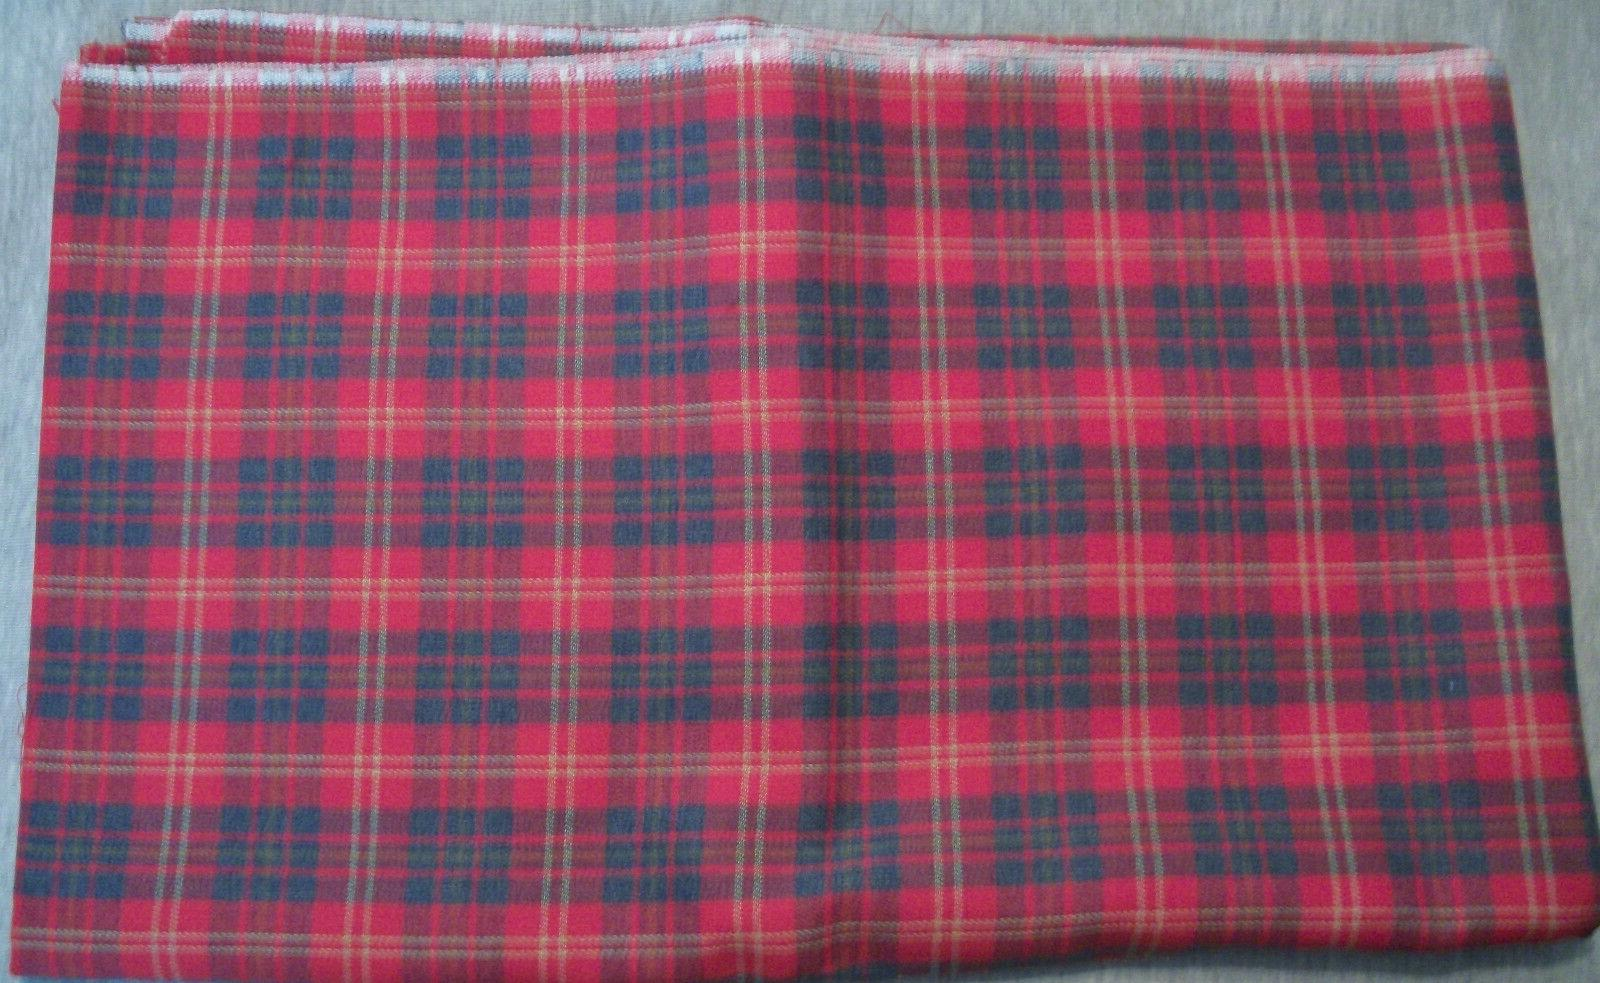 "2 Yards 45"" Wide Red & Plaid Blend Fabric"